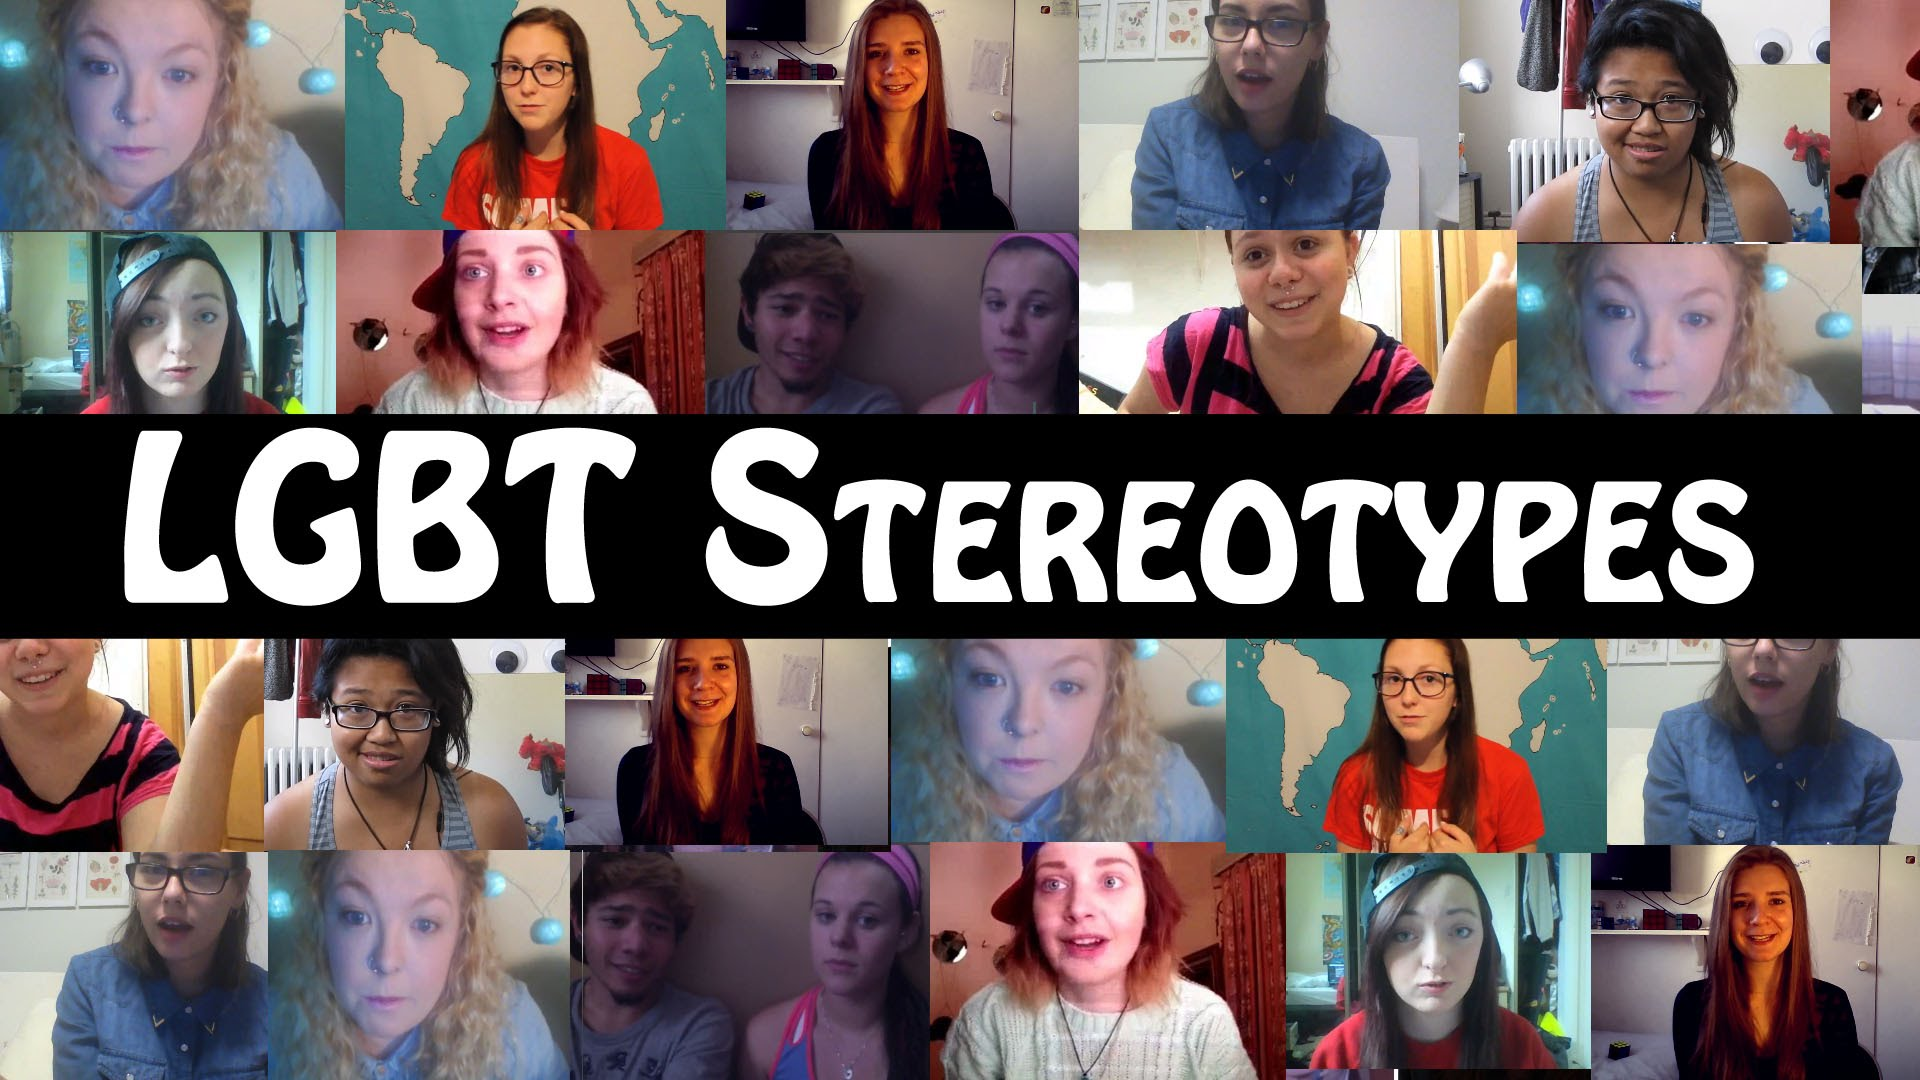 Stereotypes of lesbians